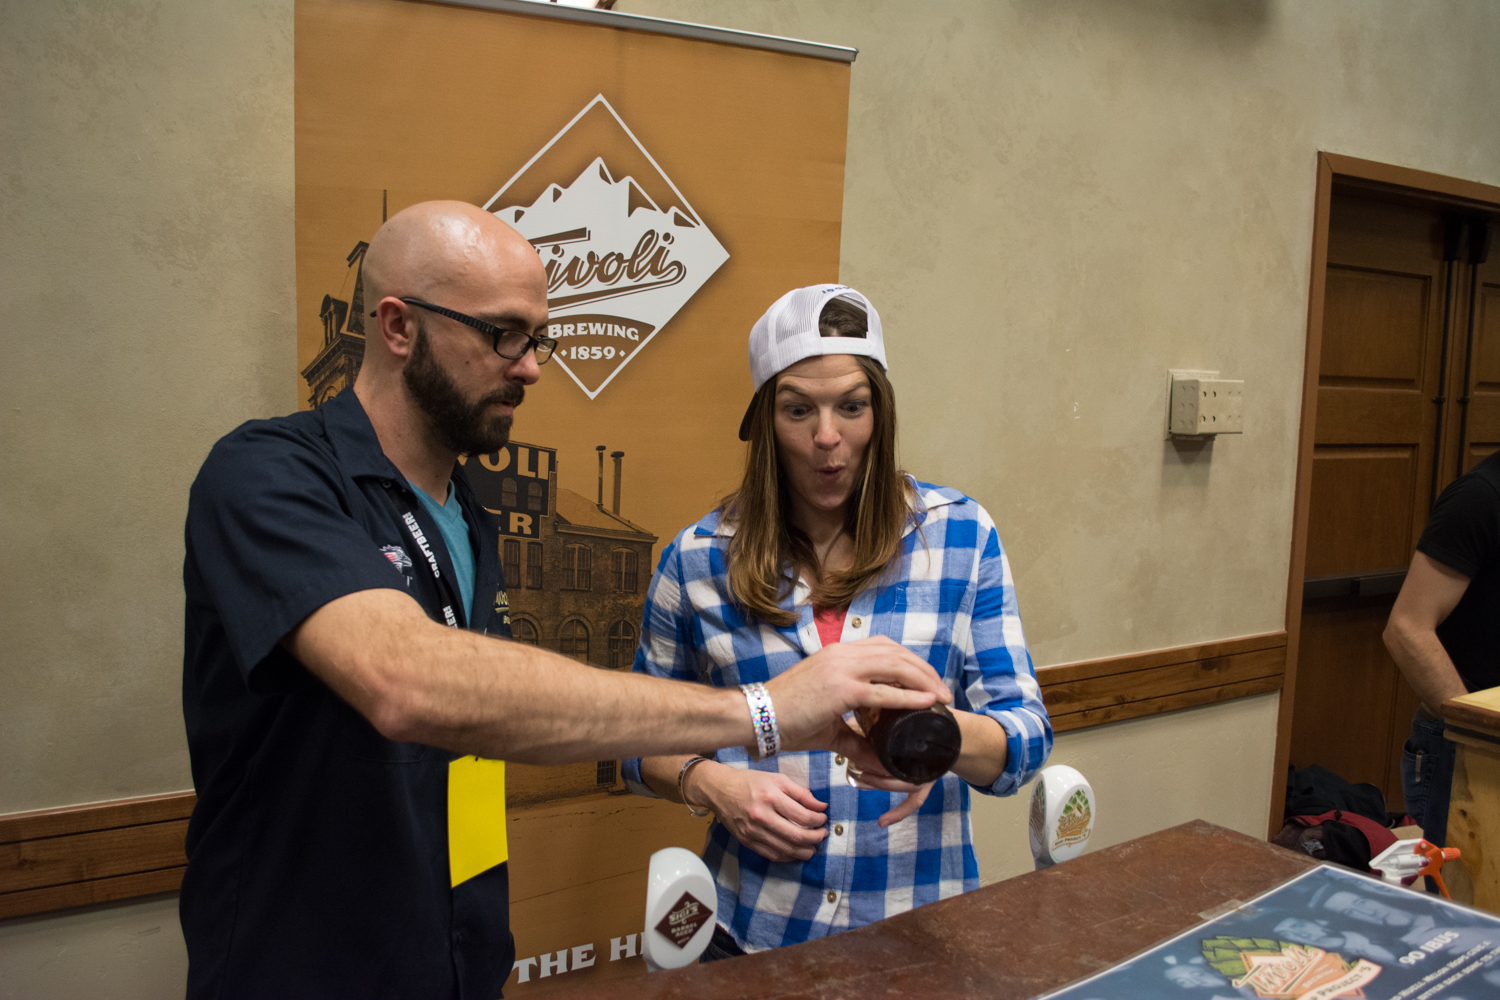 Nate Nicklas from Tivoli Brewing pours one of their new barrel aged offerings.